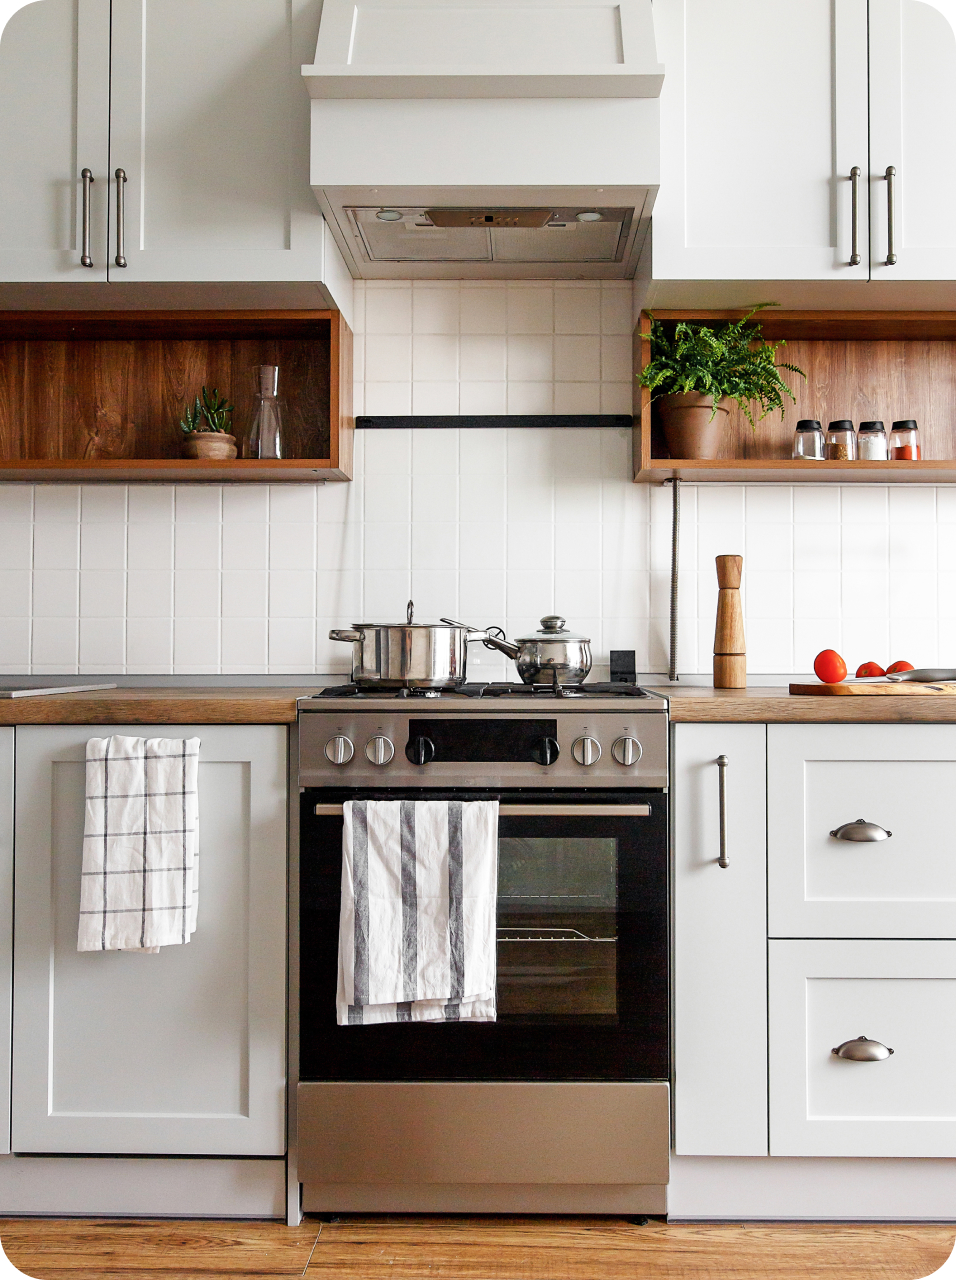 Clean kitchen with white cabinets and a stainless steel stove